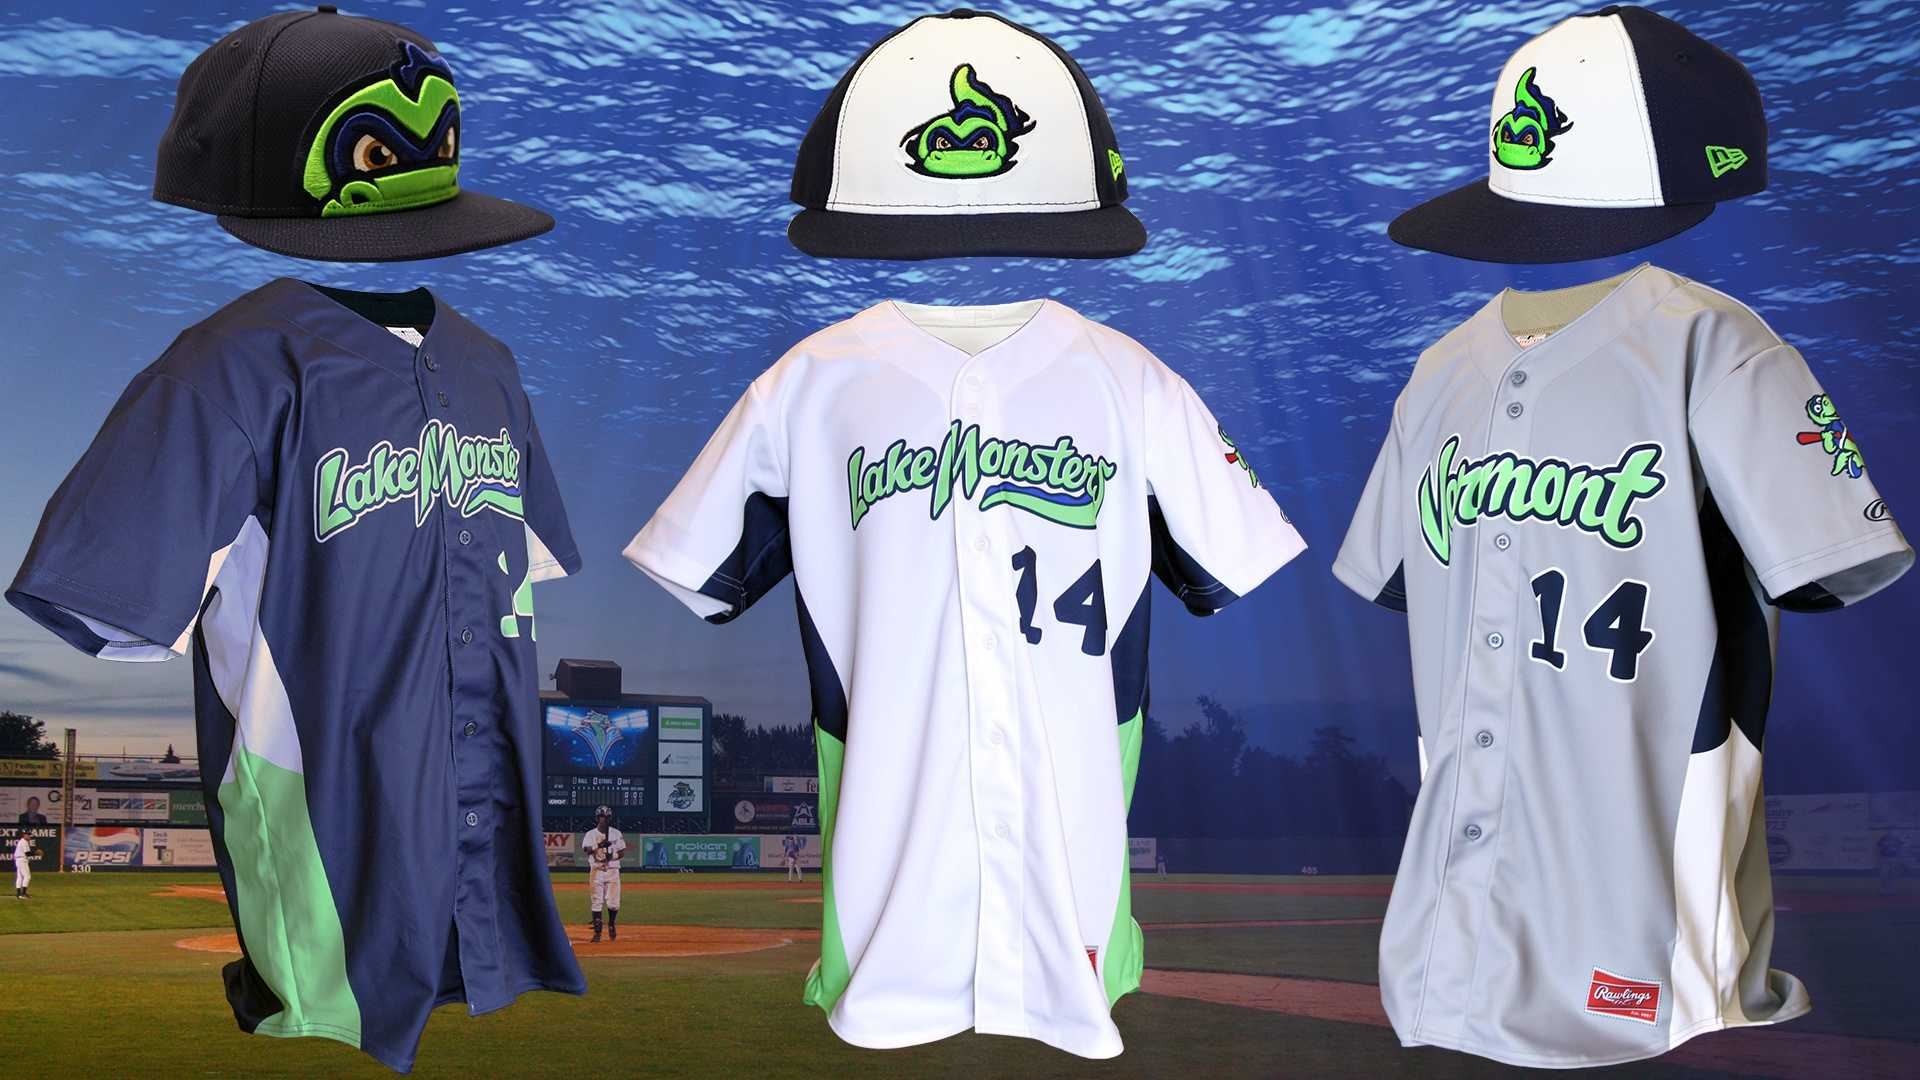 The Vermont Lake Monsters reveal three new jersey designs for the 2014 season.